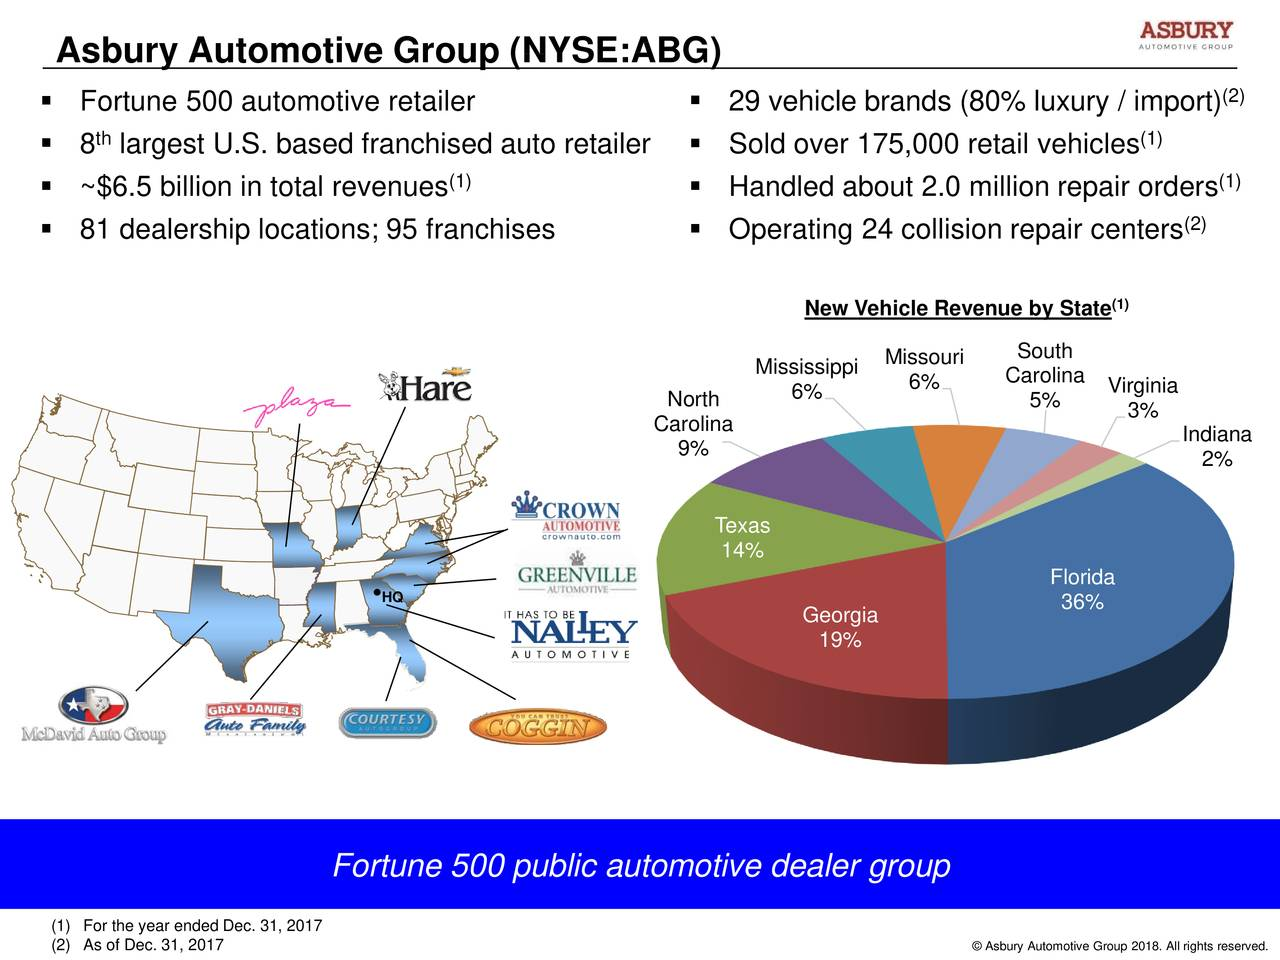  Fortune 500 automotive retailer  29 vehicle brands (80% luxury / import) (2) th (1)  8 largest U.S. based franchised auto retailer  Sold over 175,000 retail vehicles (1) (1)  ~$6.5 billion in total revenues  Handled about 2.0 million repair orders (2)  81 dealership locations; 95 franchises  Operating 24 collision repair centers New Vehicle Revenue by State(1) Missouri South Mississippi 6% Carolina North 6% 5% Virginia Carolina 3% 9% Indiana 2% Texas 14% Florida •HQ 36% Georgia 19% Fortune 500 public automotive dealer group (1) For the year ended Dec. 31, 2017